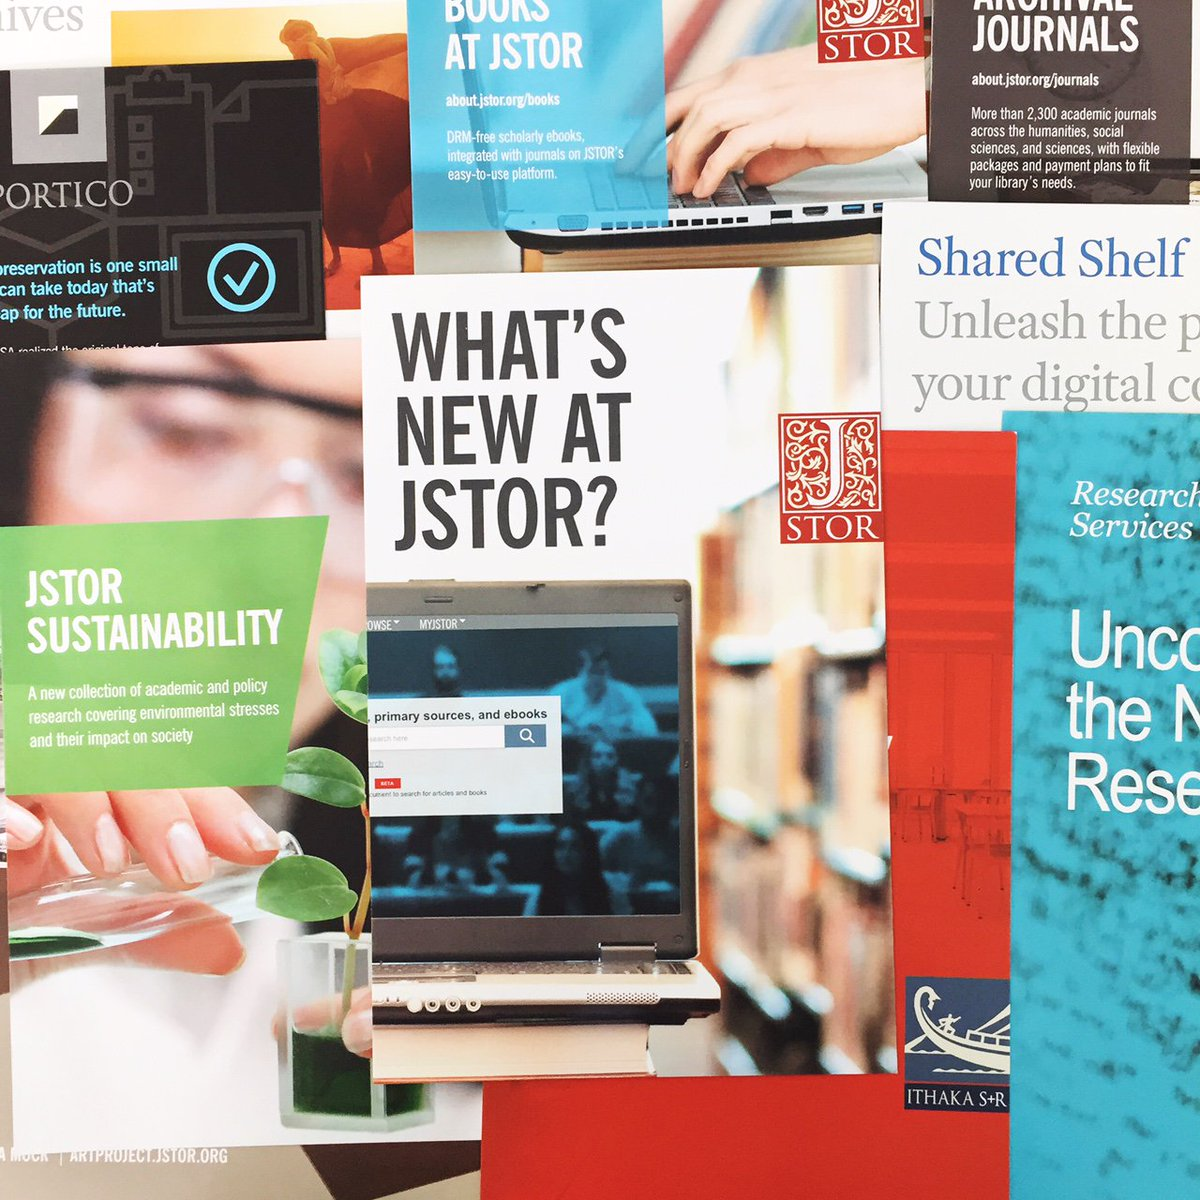 test Twitter Media - Want to find out what's new at JSTOR? There's still time! Head to booth 2620 at #alaac17! https://t.co/fk0sfpOPMy https://t.co/Xbube2wjfU